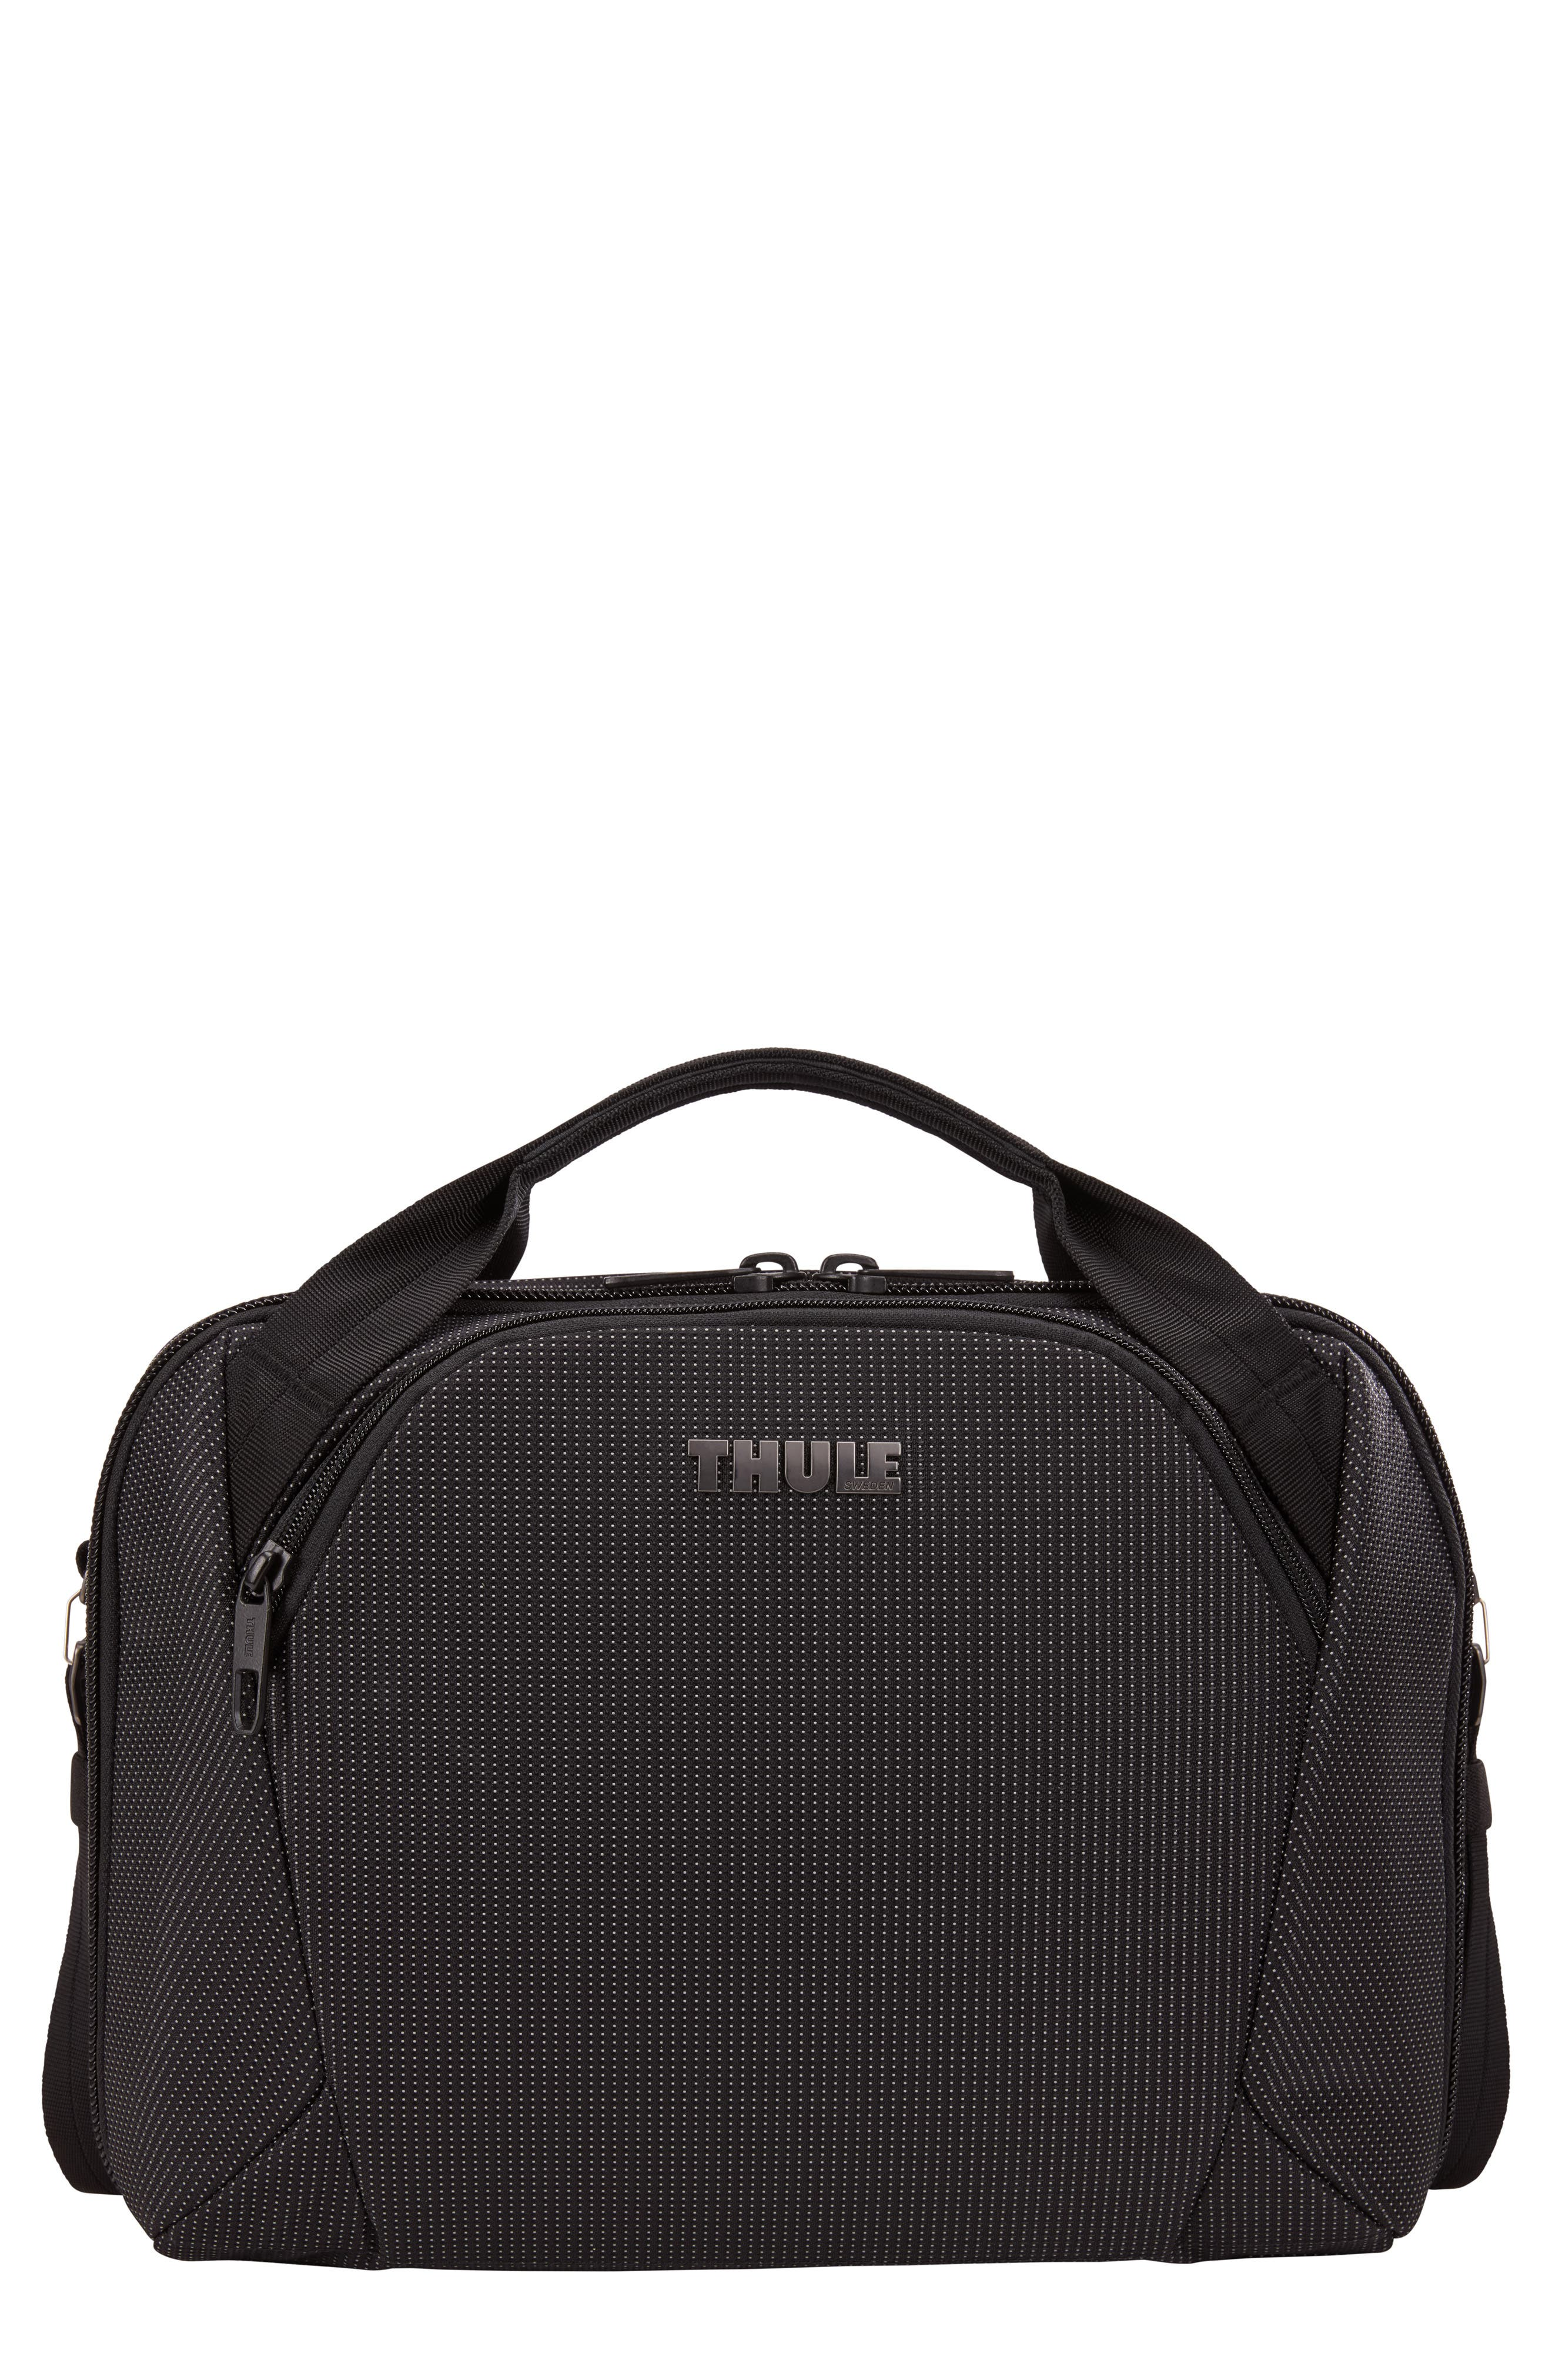 THULE, Crossover 2 Convertible Laptop Backpack, Main thumbnail 1, color, BLACK